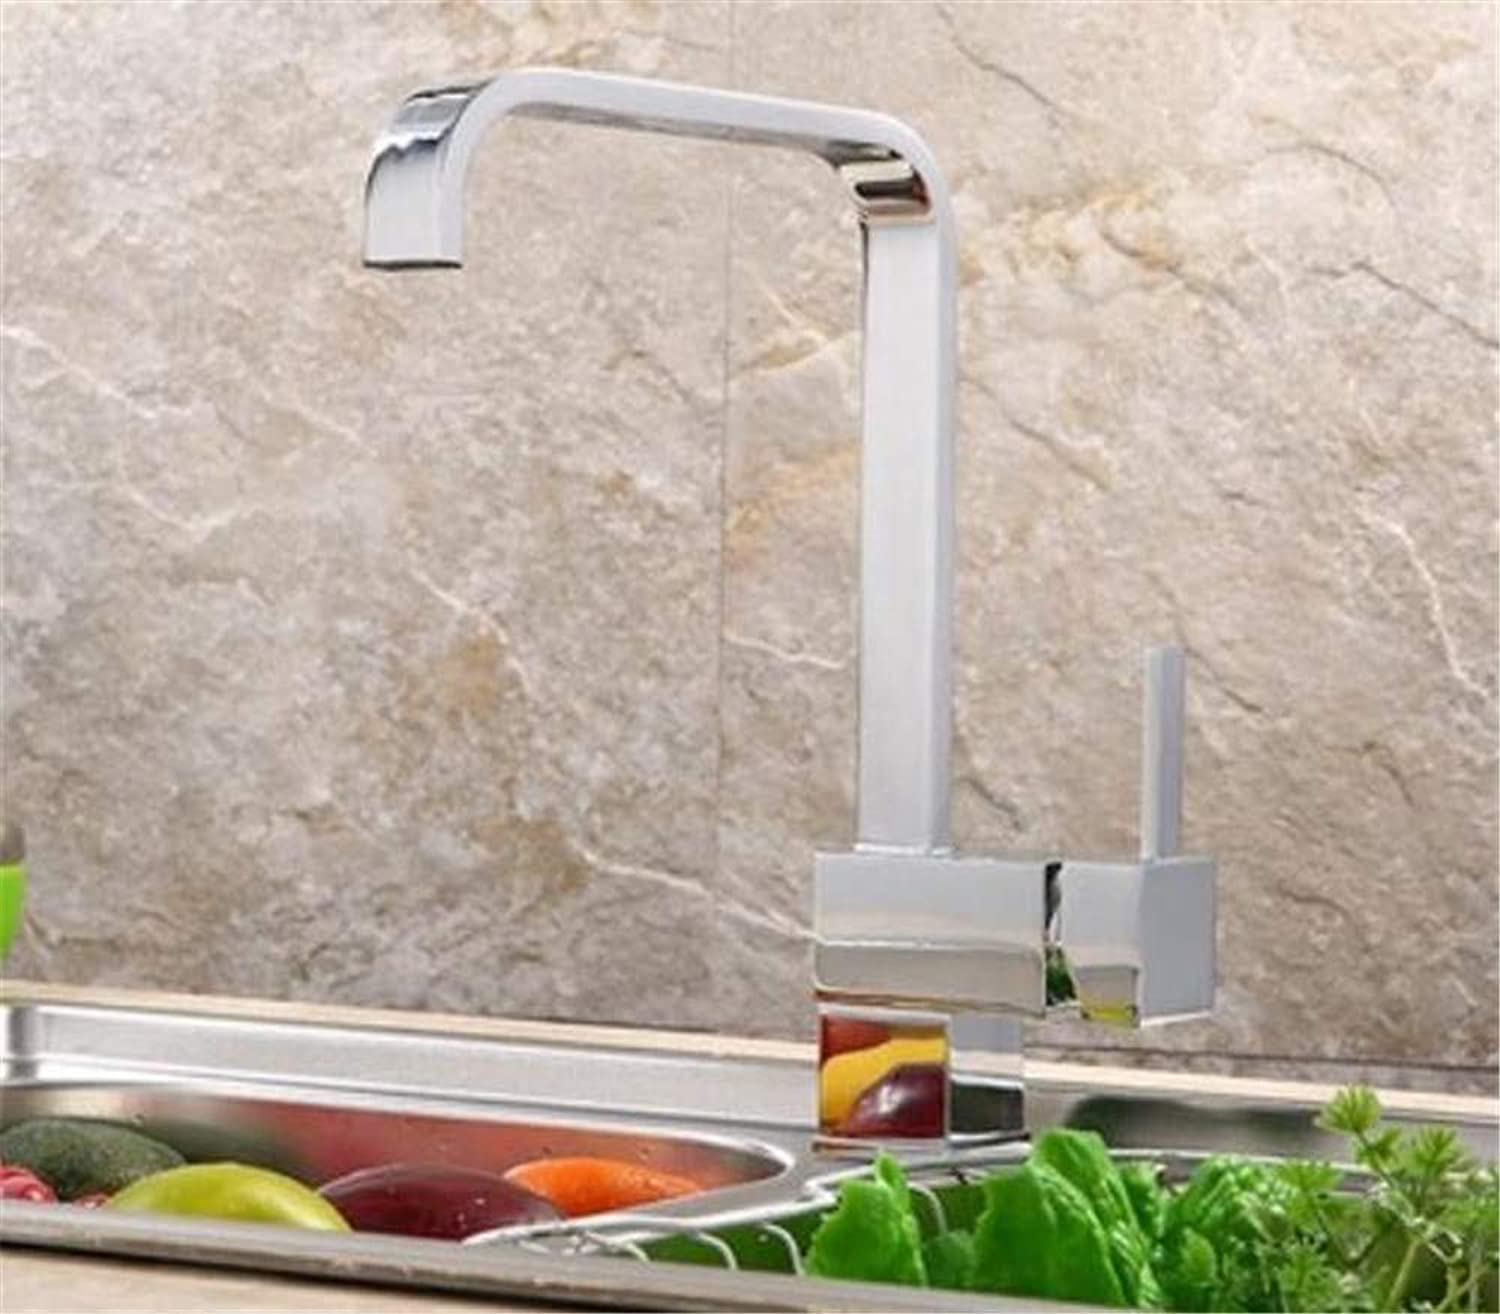 Oudan Kitchen Faucet Hot and Cold Vegetables Basin Stainless Steel Sink Faucet redation Washbasin Faucet (color   -, Size   -)